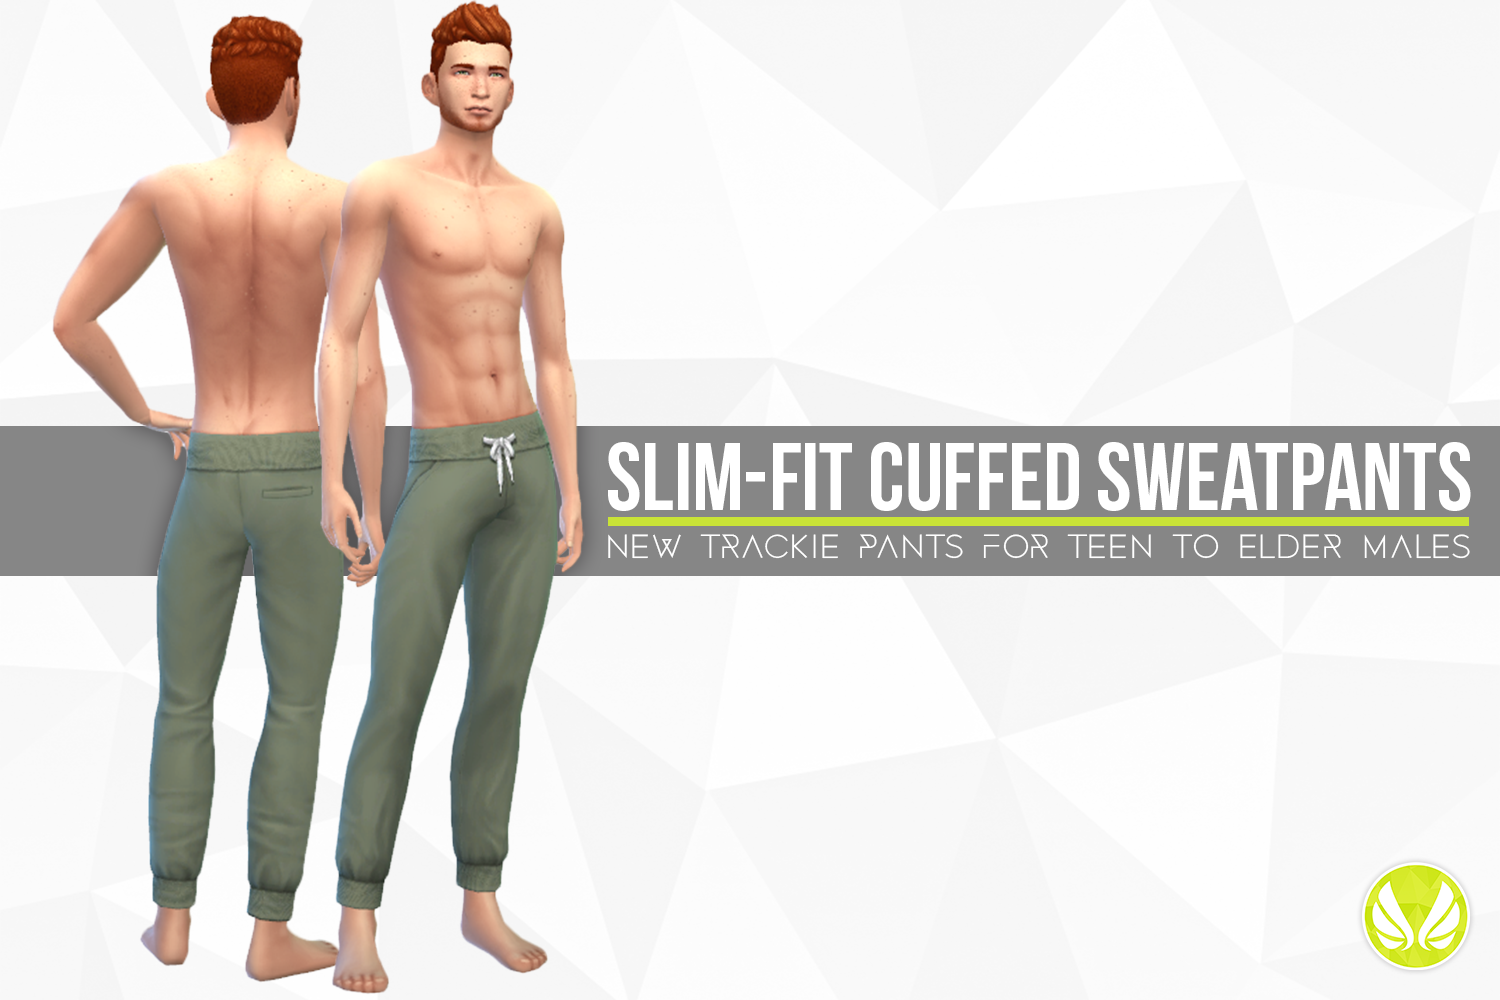 Slim-fit Cuffed Sweatpants by simsationaldesigns